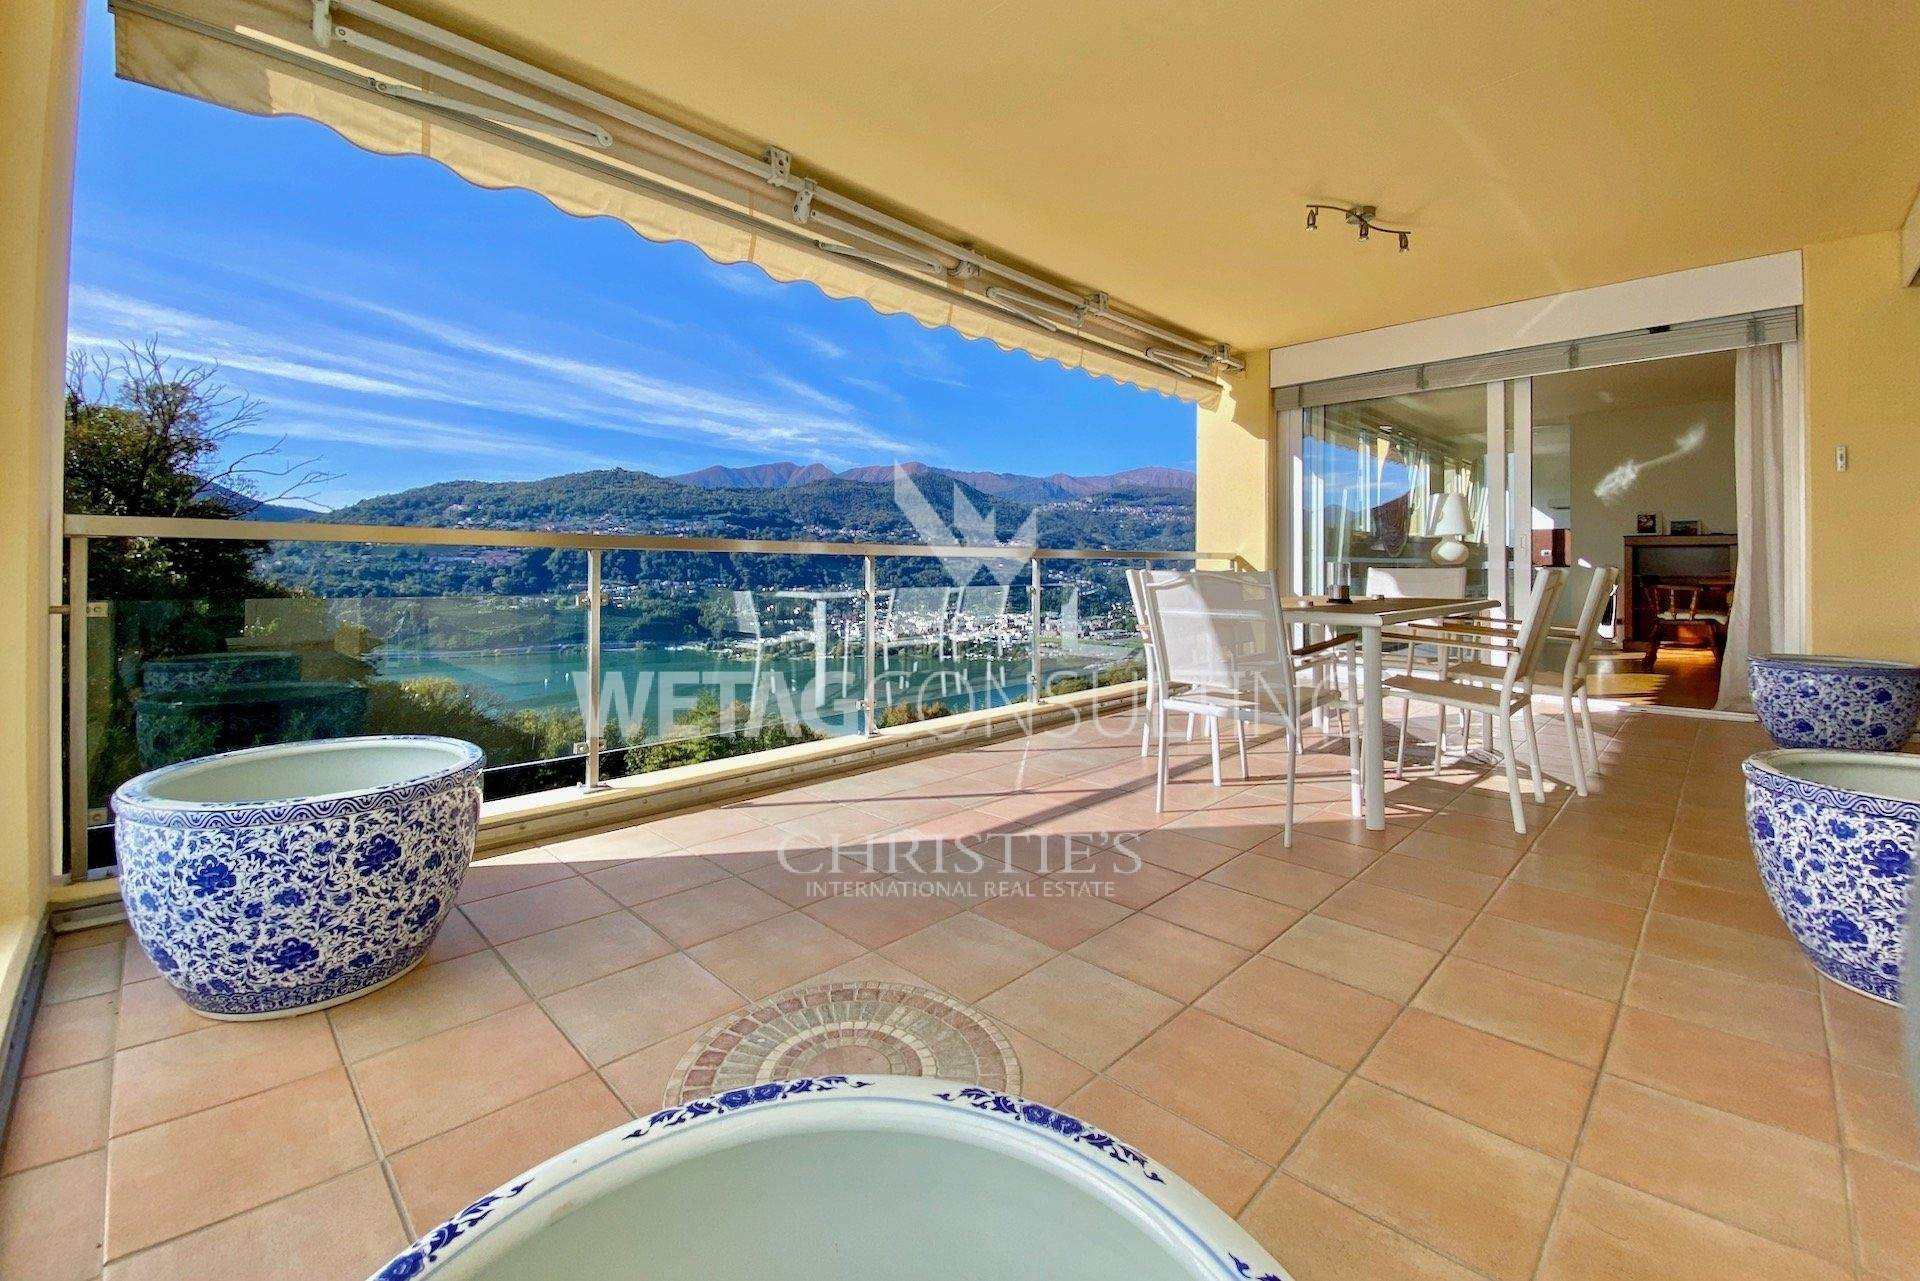 公寓 為 出售 在 Montagnola: penthouse apartment for sale with panoramic roof terrace Montagnola, 提契诺,6926 瑞士